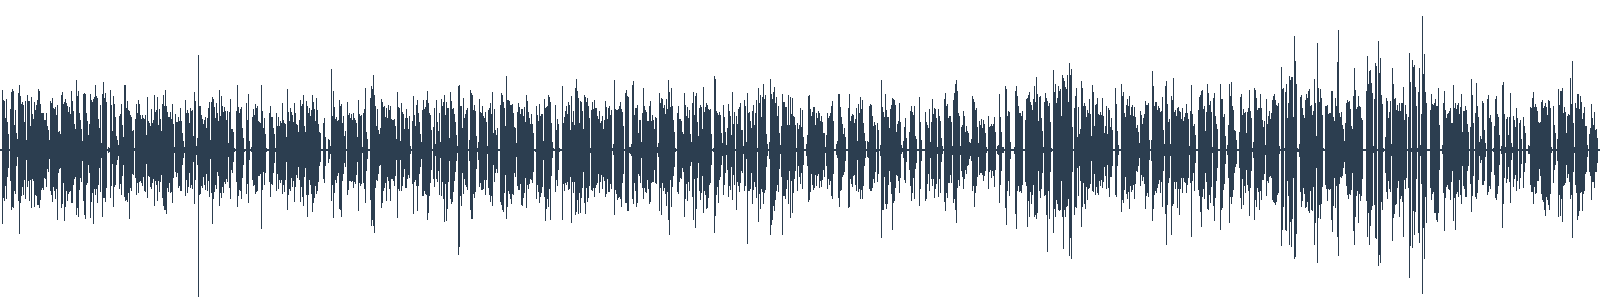 Petrichor waveform